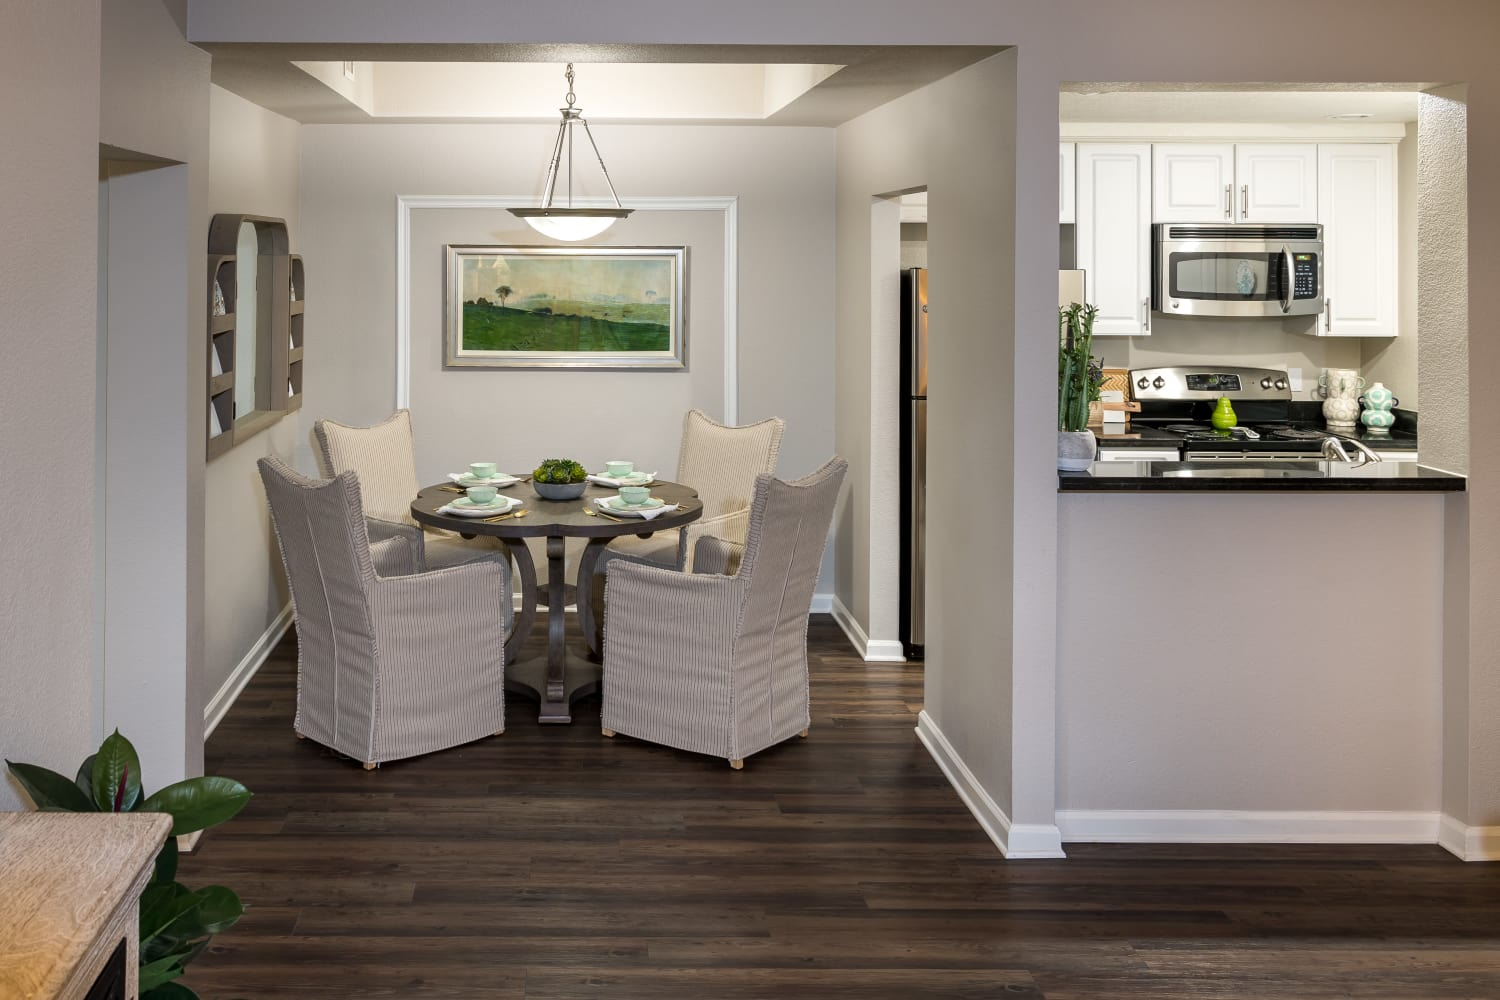 Dining room at Nantucket Apartments in Santa Clara, California